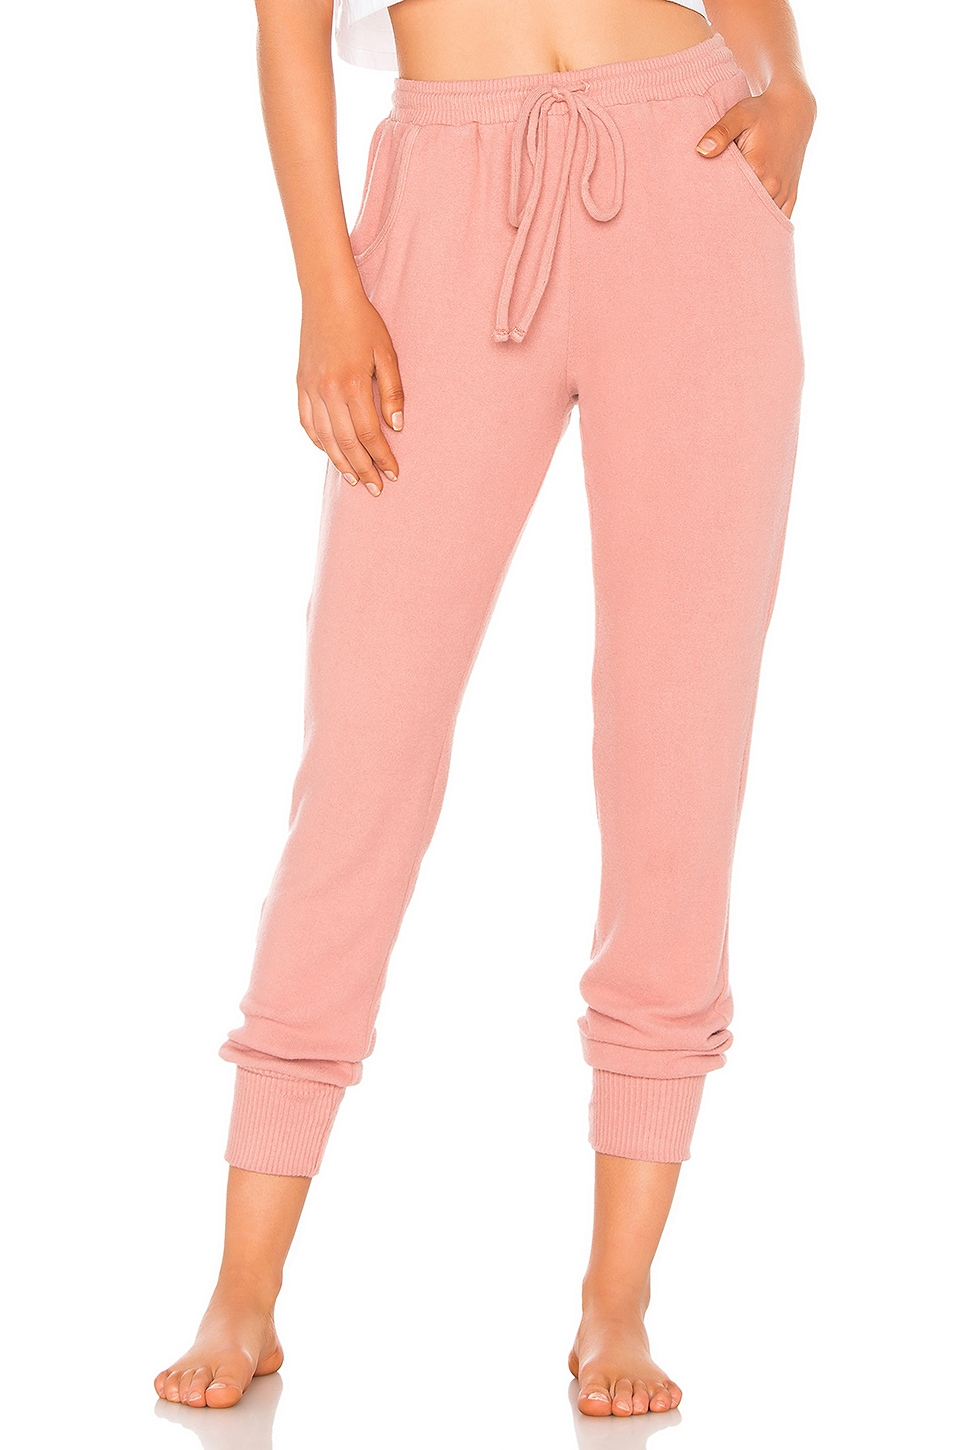 Eberjey Cozy Time Runner Pant